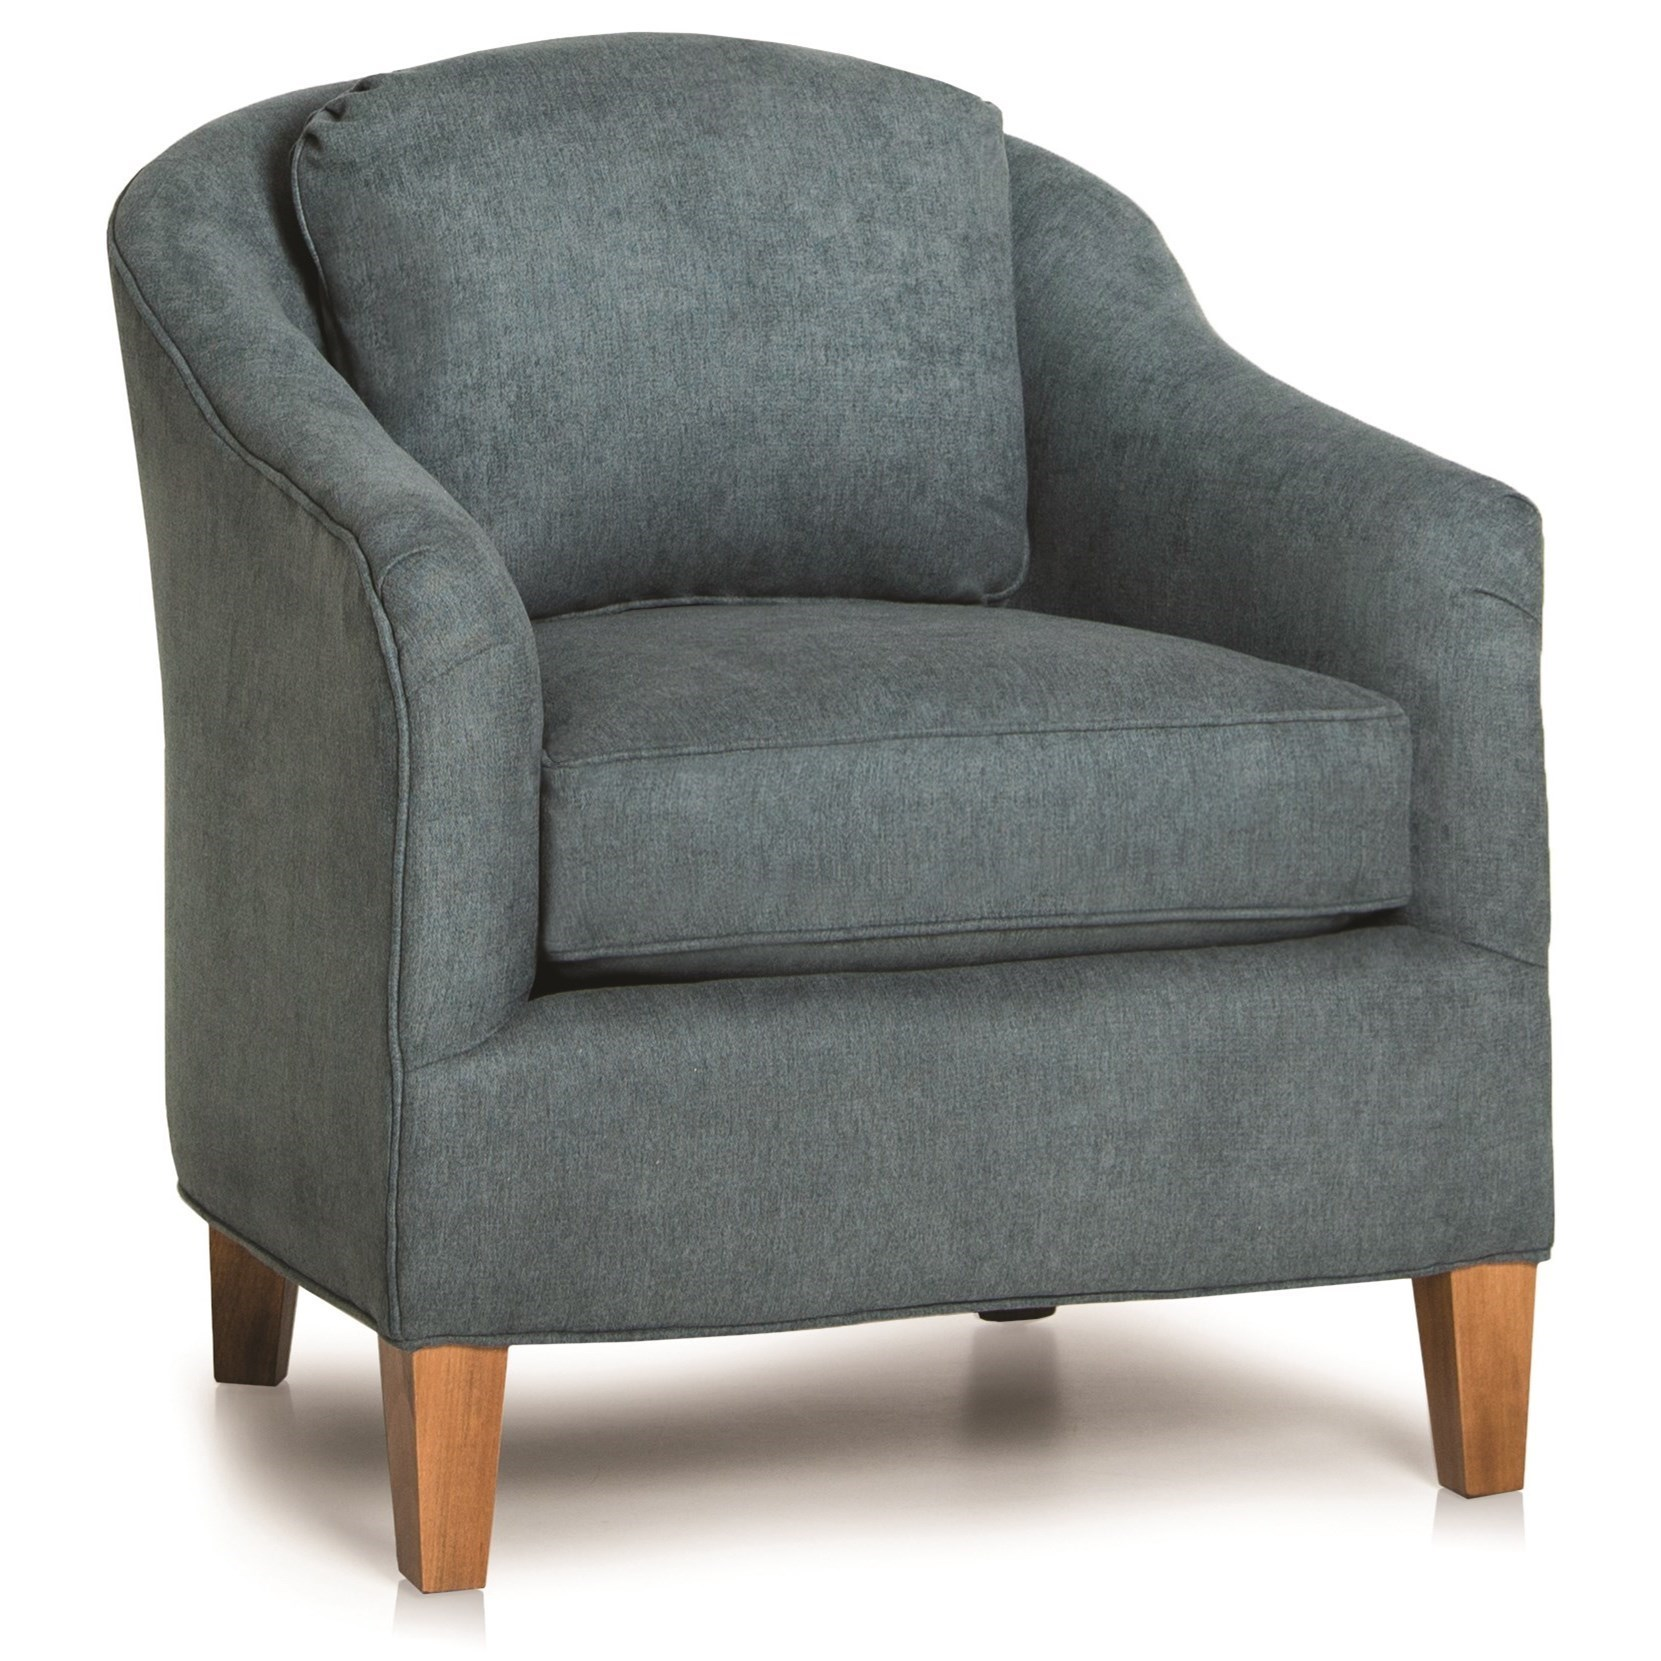 Attirant Smith Brothers 942 Contemporary Barrel Chair With Sloped Arms